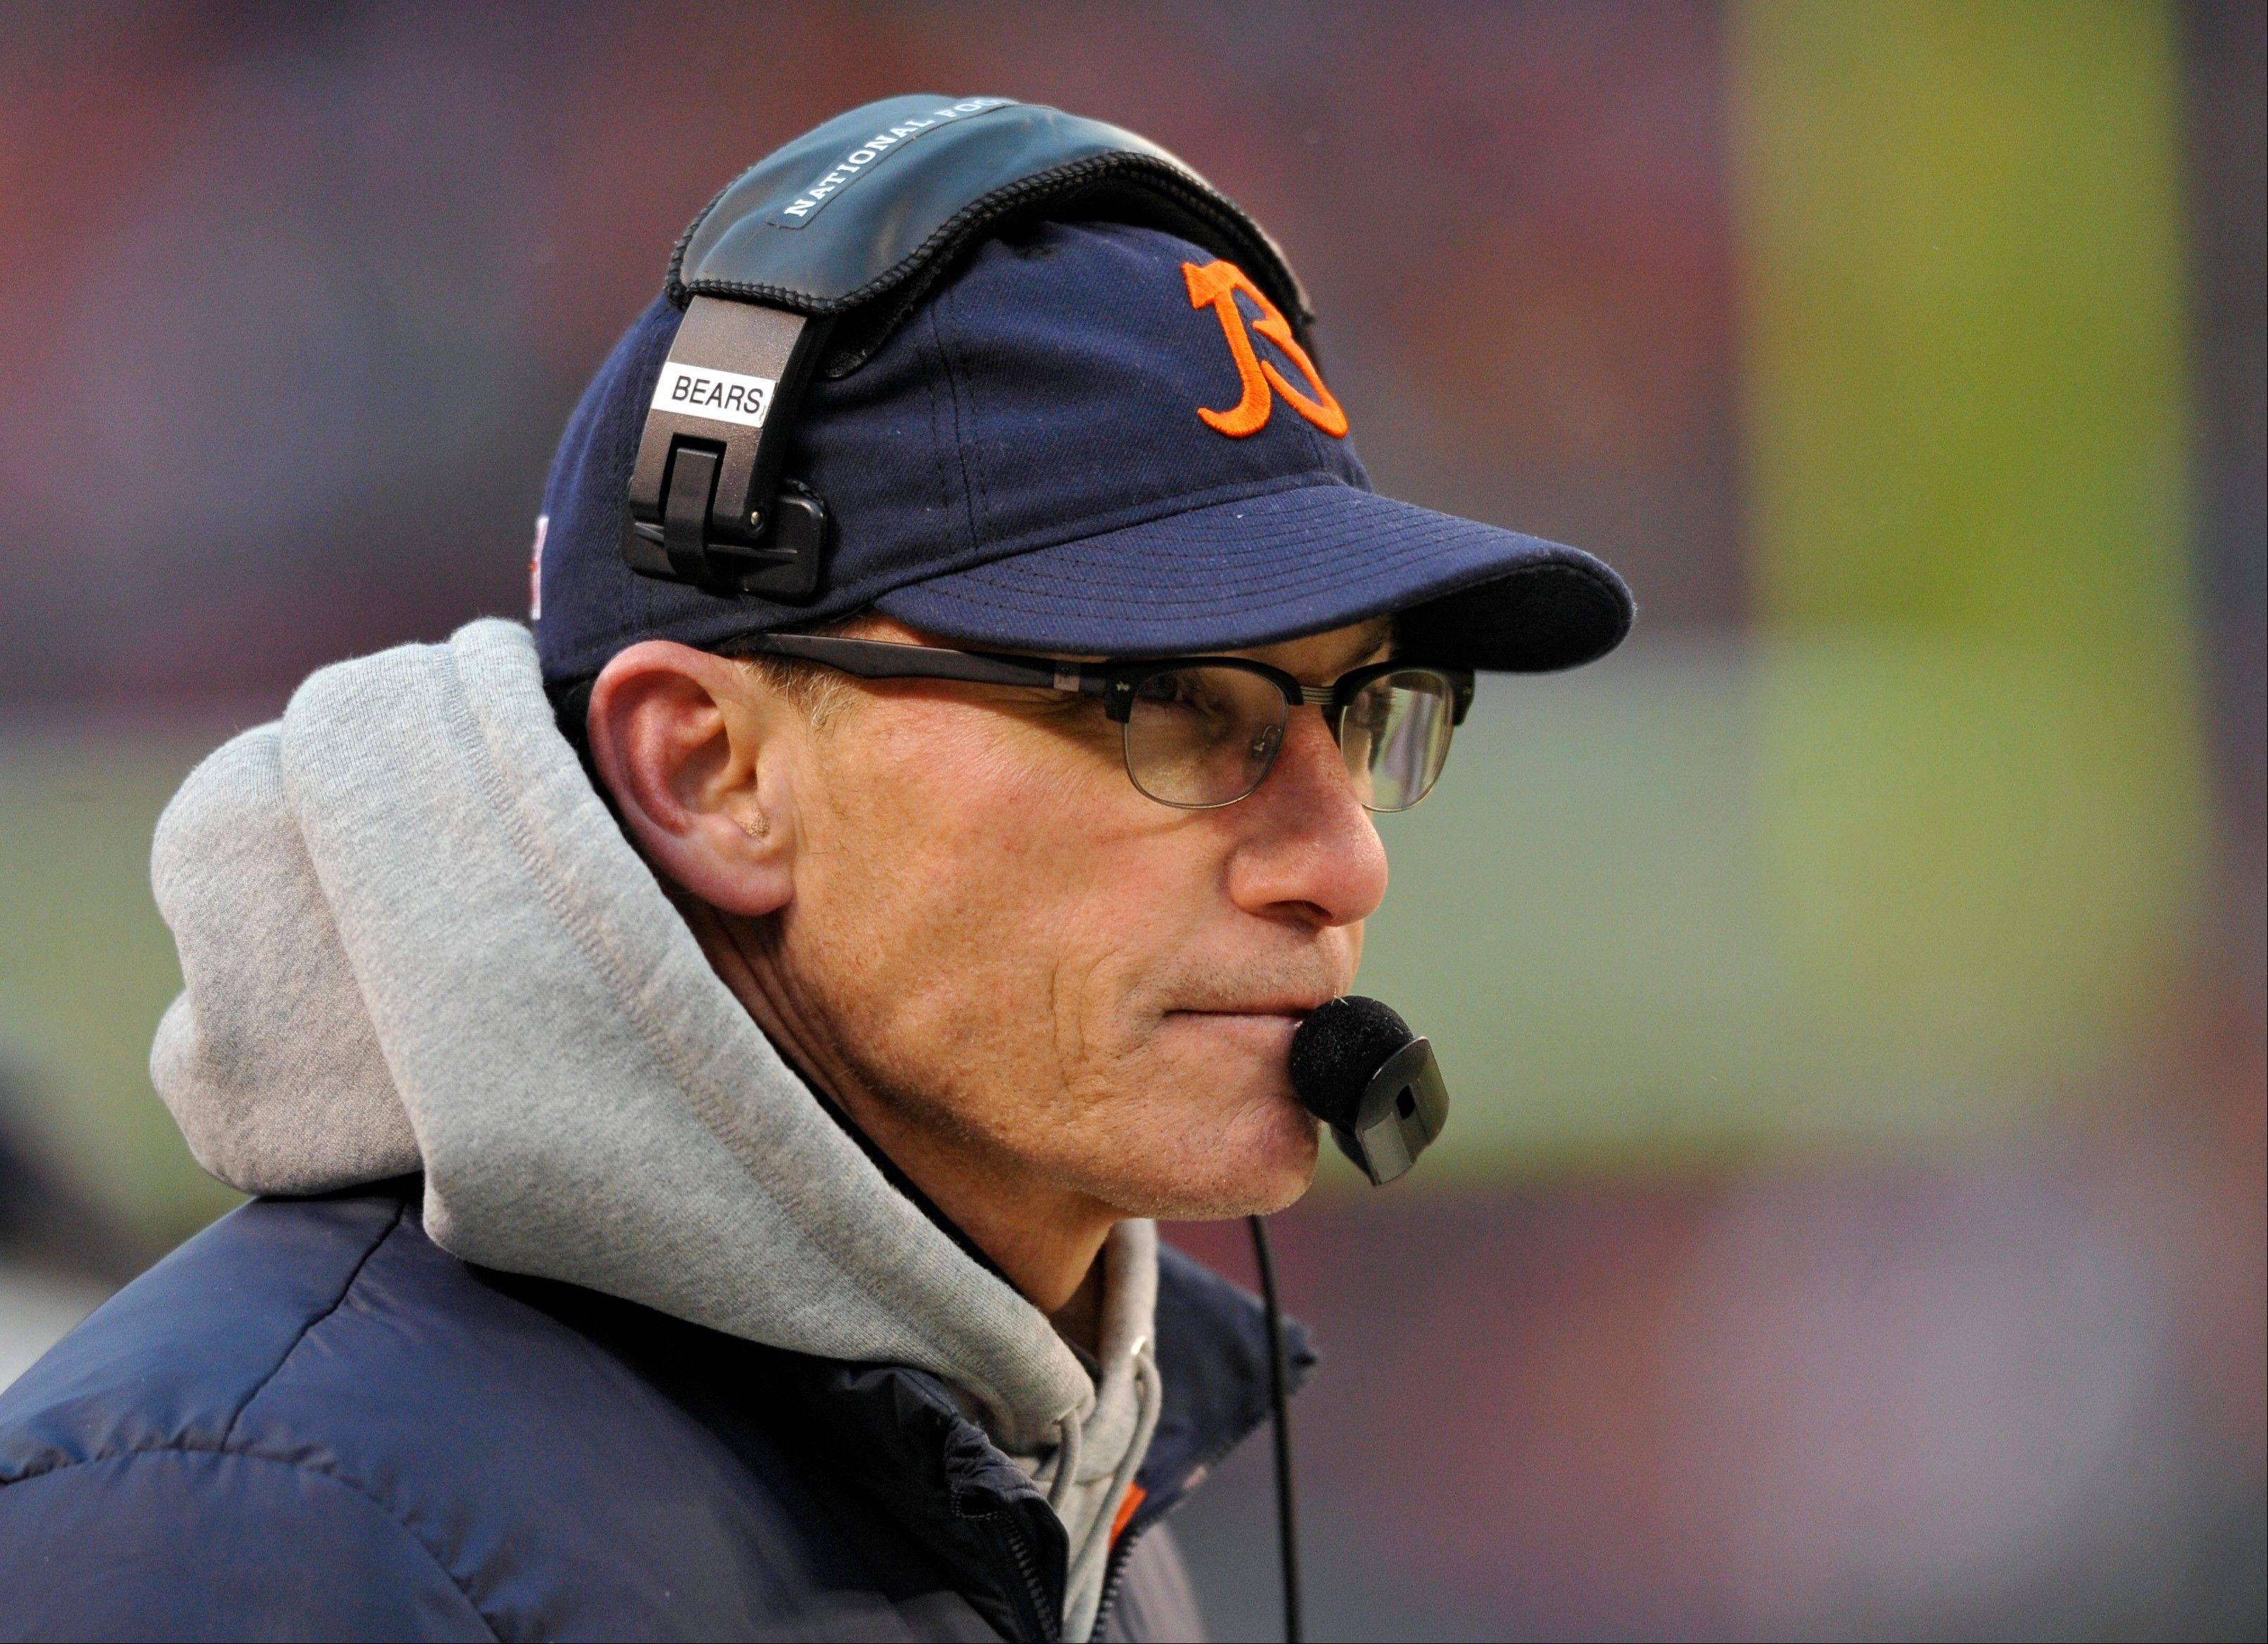 Bears coach Marc Trestman�s off-season plan to have players learn more about each other seems to be working, especially for quarterback Jay Cutler.